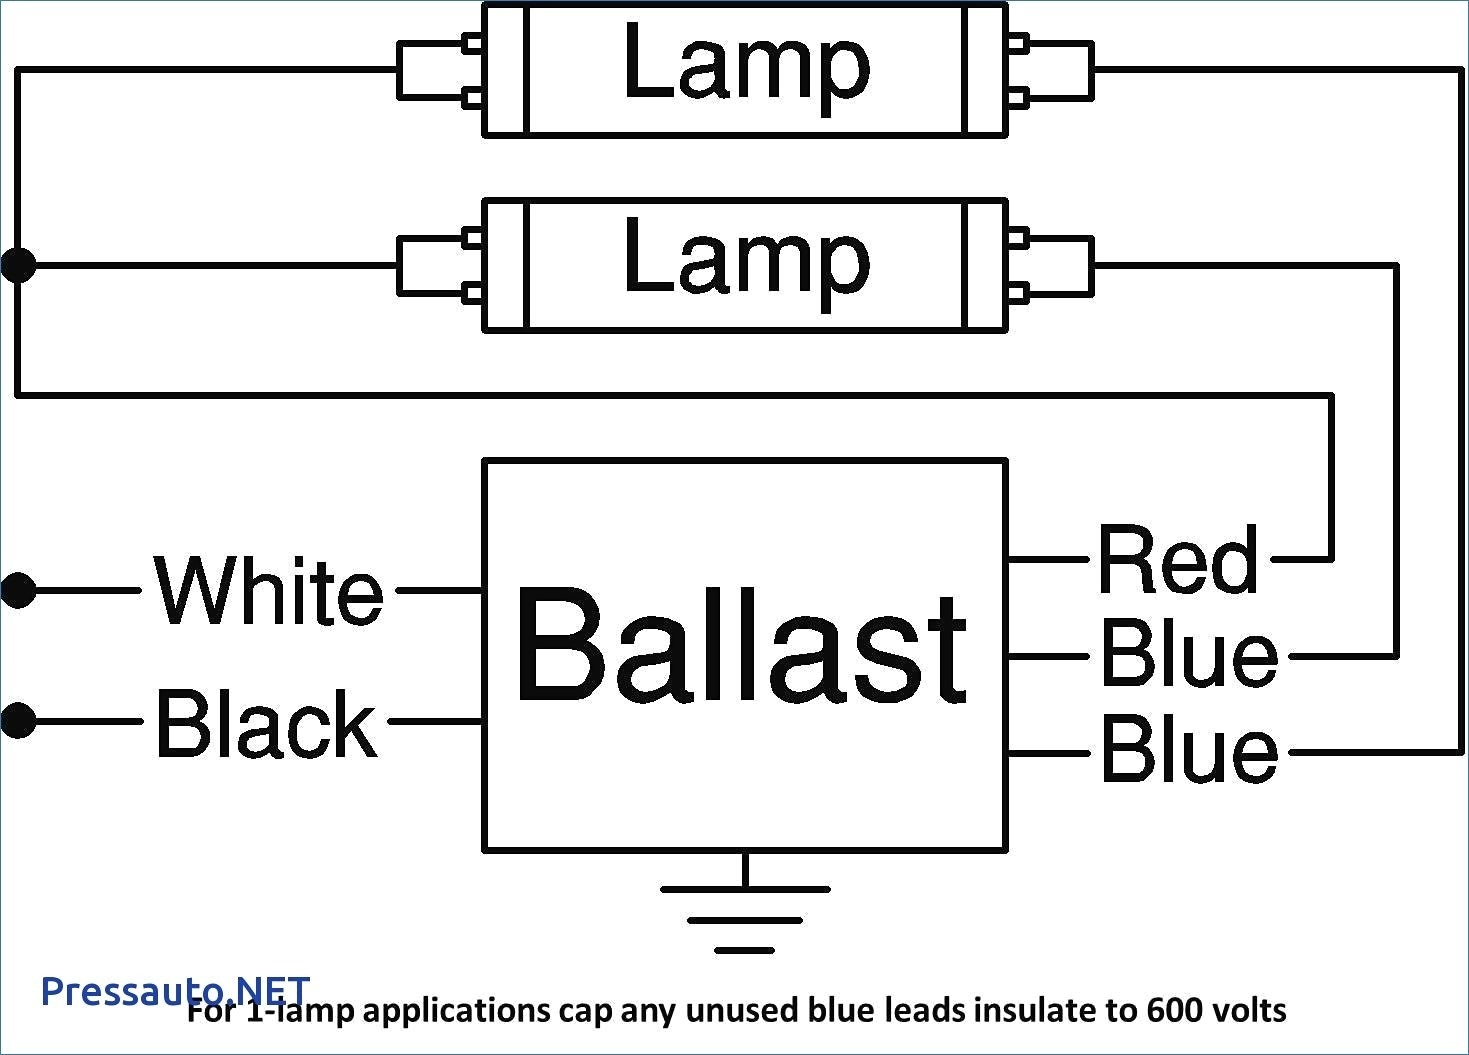 277 volt ballast wiring diagram free wiring diagram. Black Bedroom Furniture Sets. Home Design Ideas